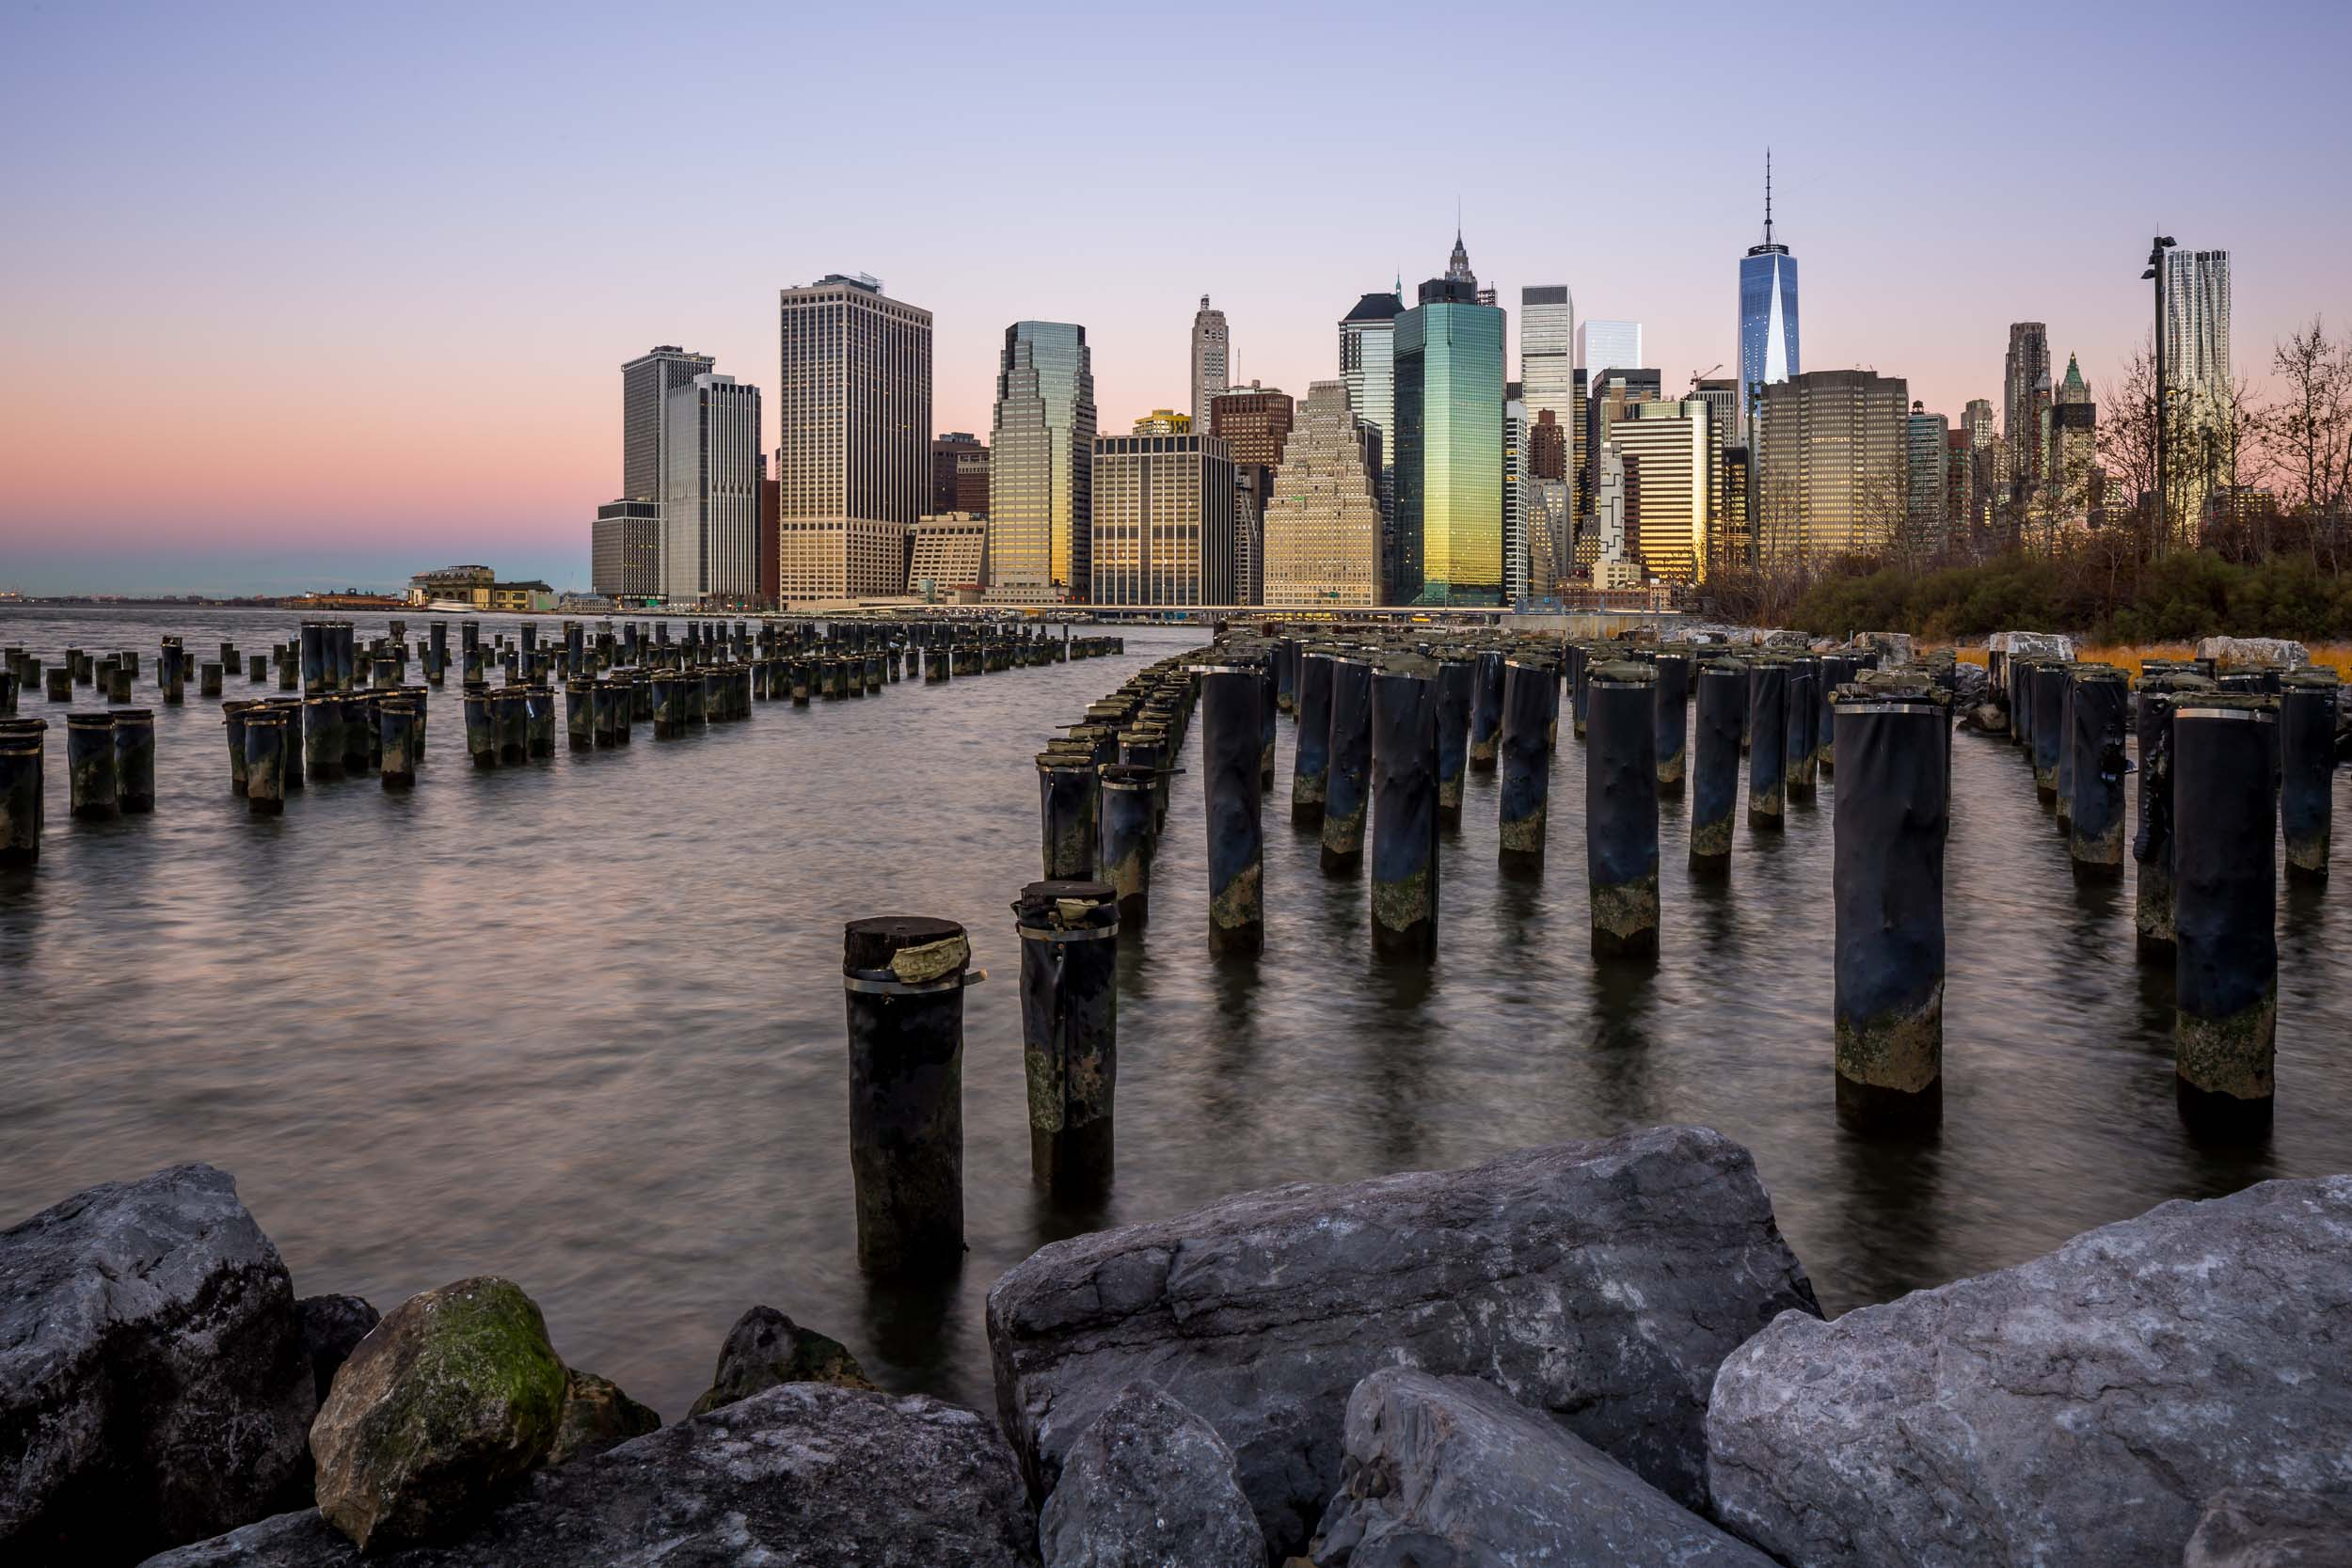 nyc manhattan island downtown hudson river brooklyn bridge park wall street sunrise.jpg